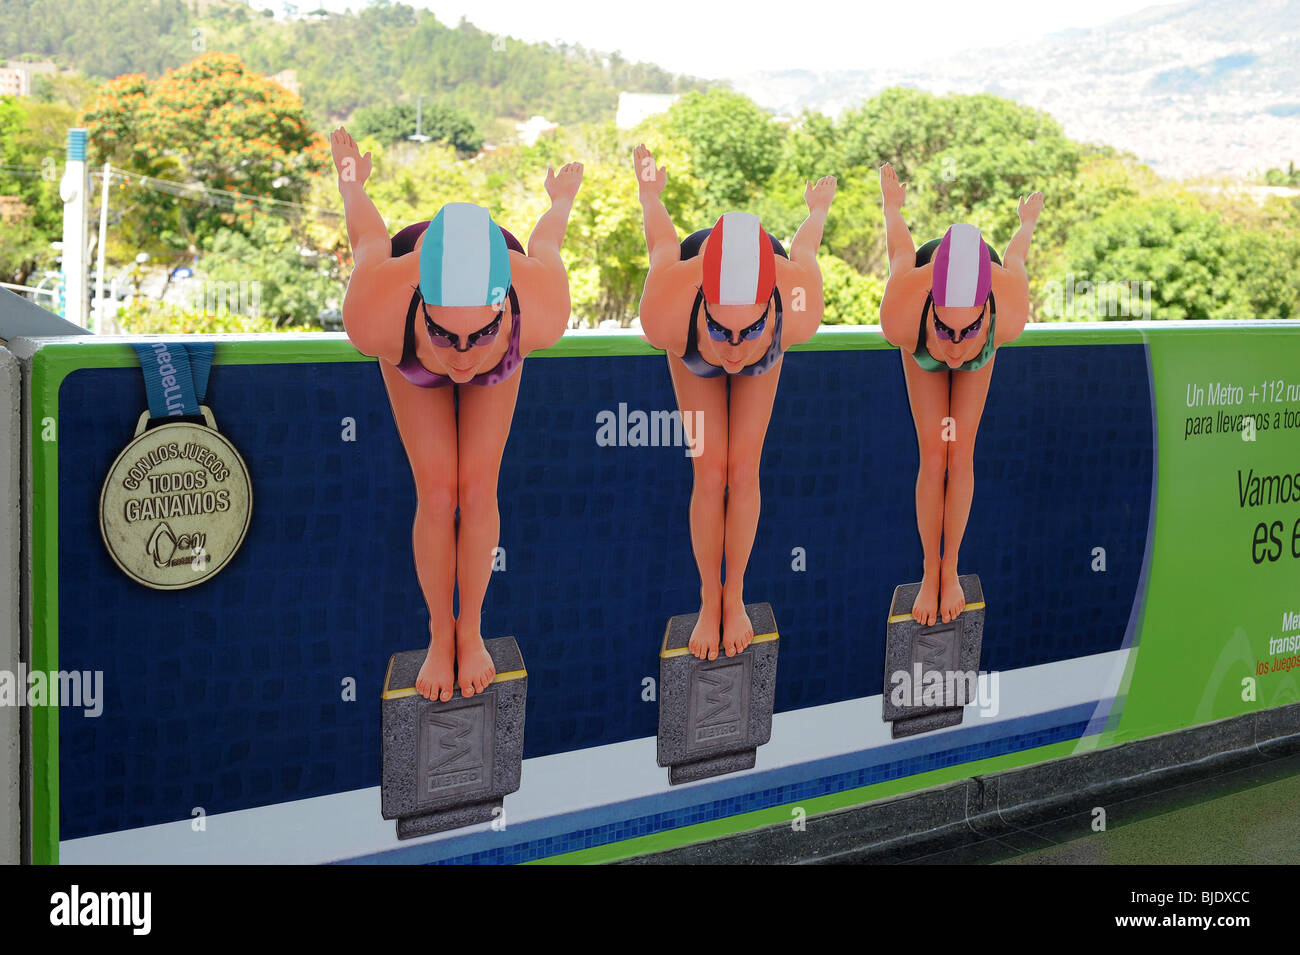 Cardboard cutouts of three swimmers displayed on the metro station platform to promote the South American Games - Stock Image